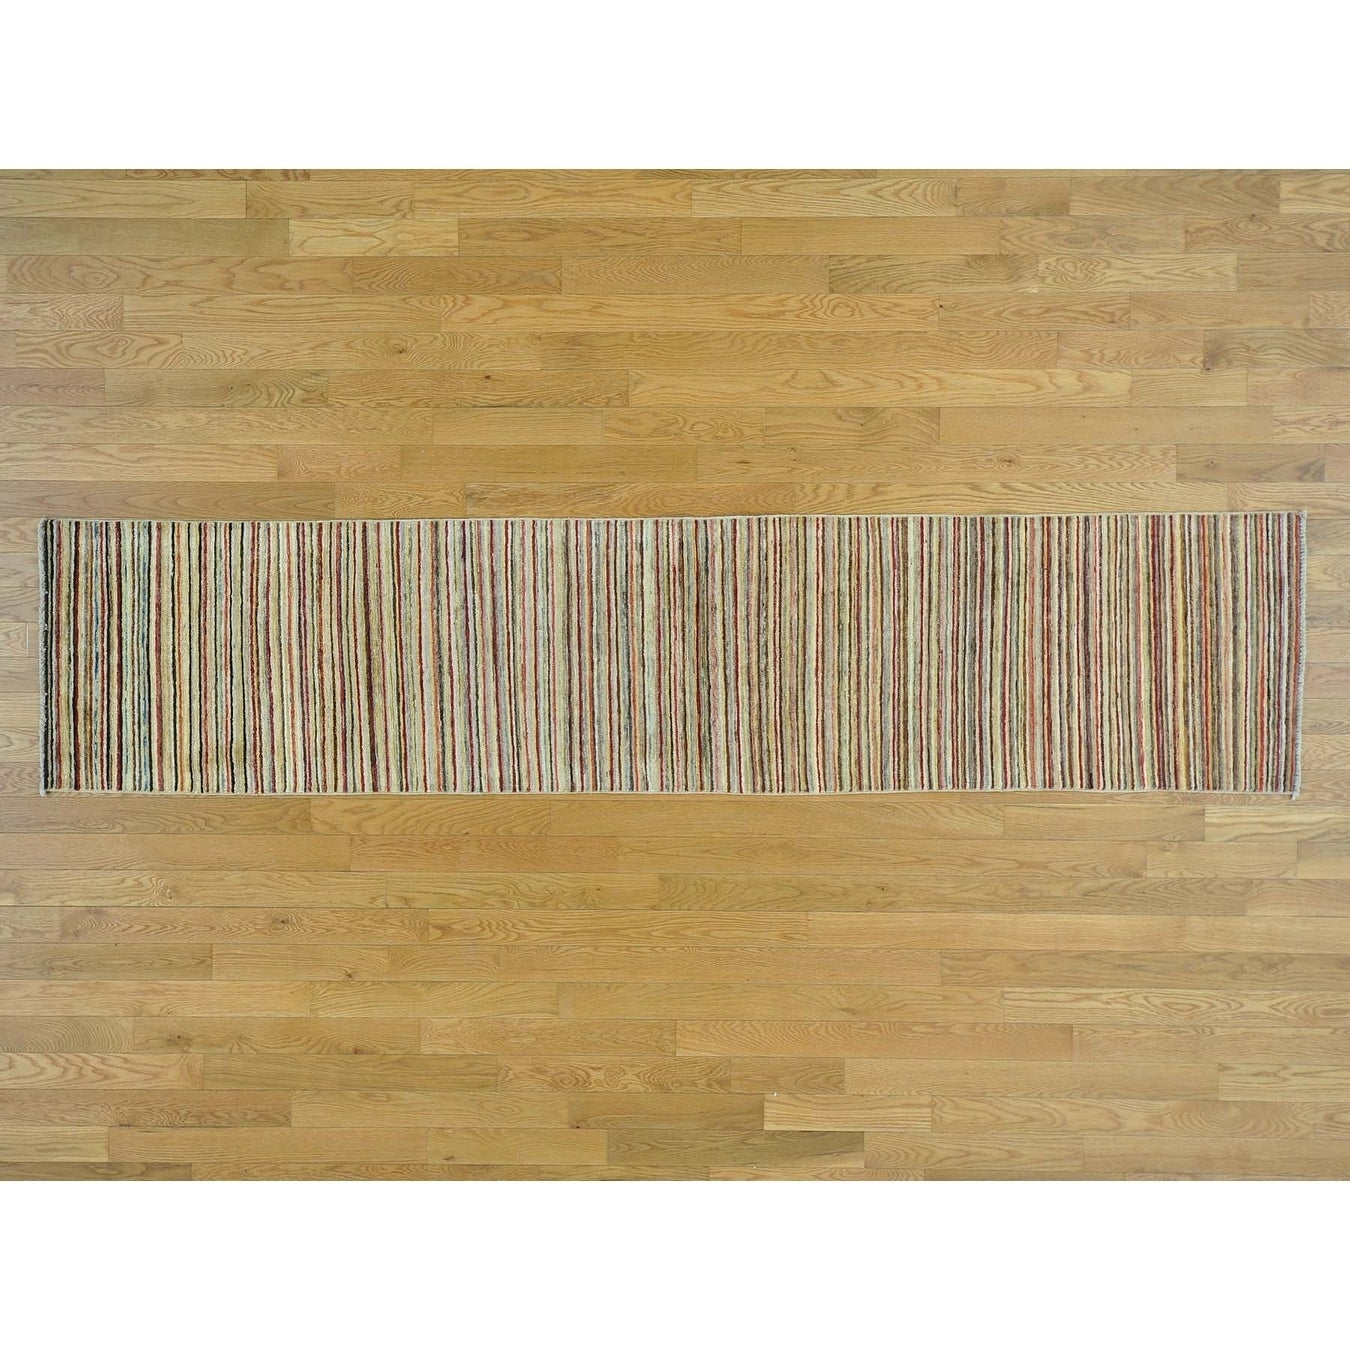 Hand Knotted Multicolored Modern & Contemporary with Wool Oriental Rug - 22 x 98